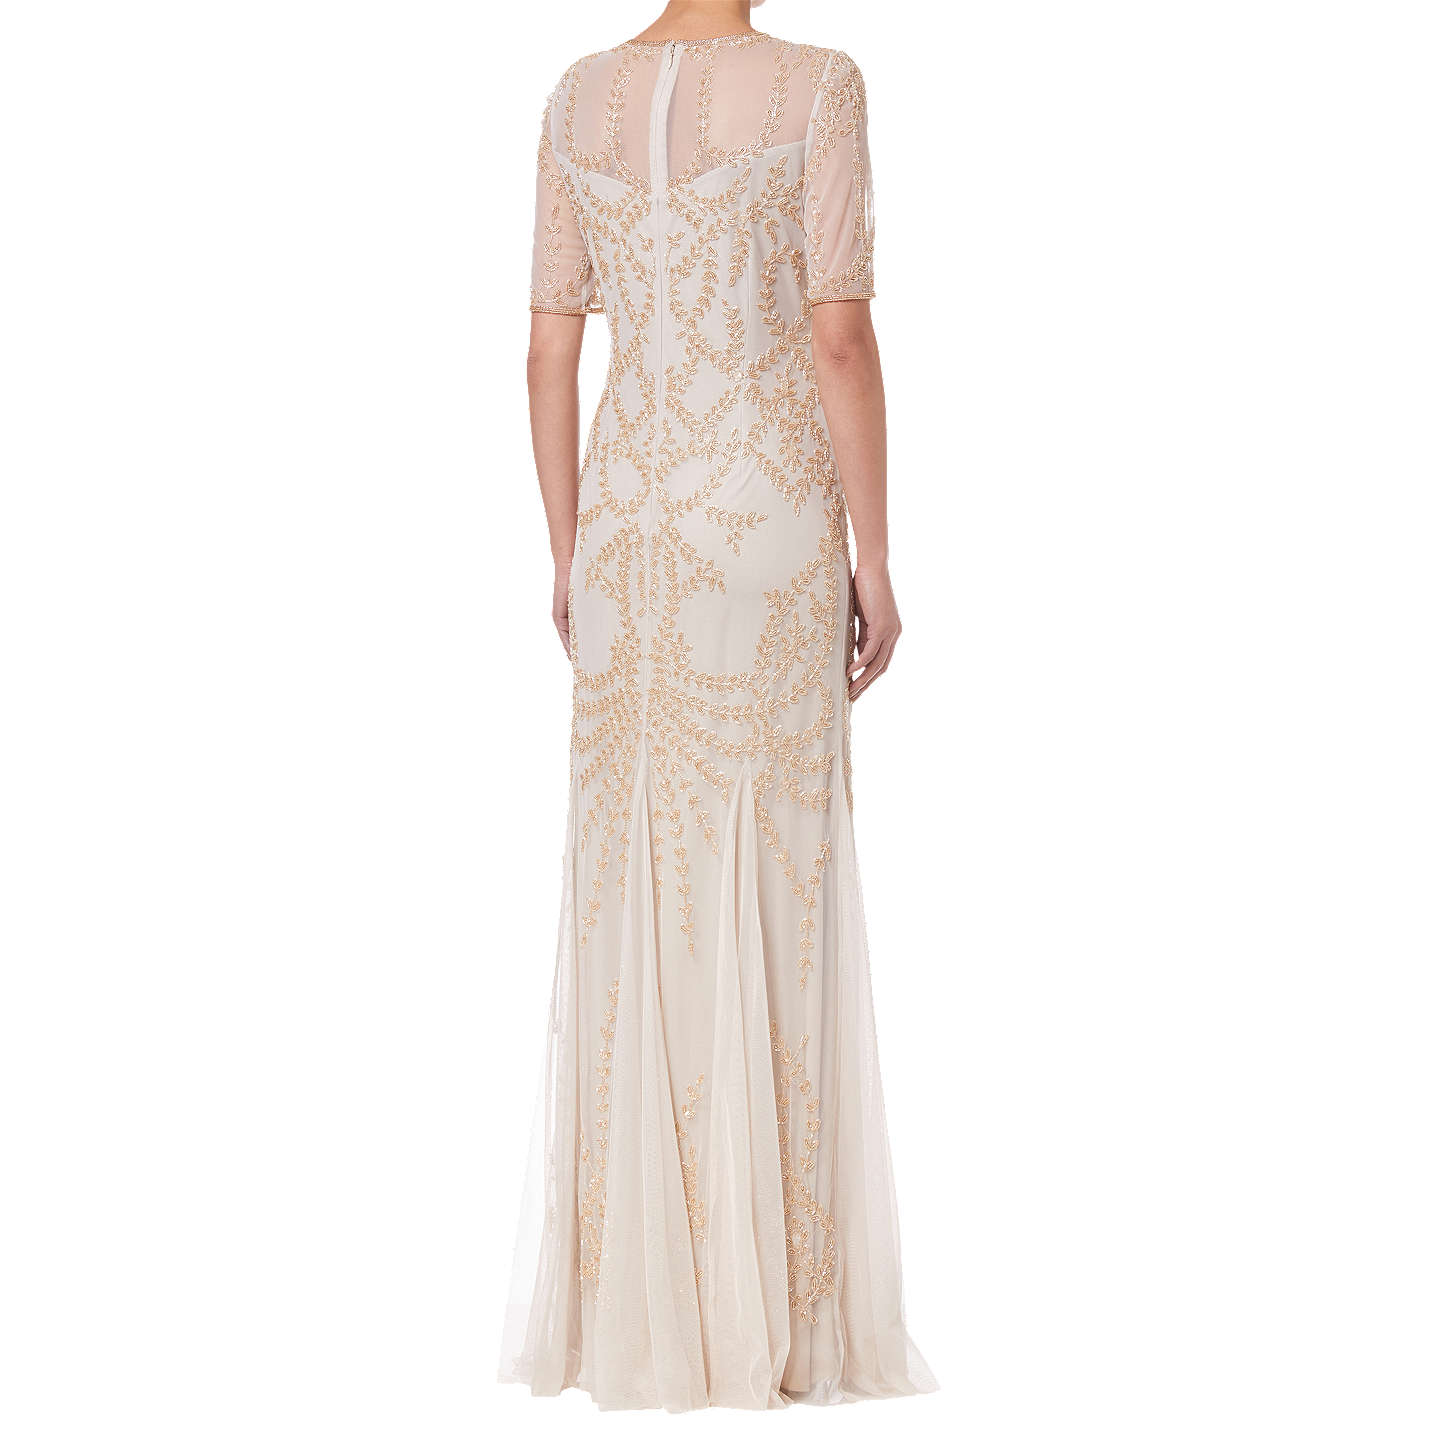 BuyAdrianna Papell Beaded Long Dress, Biscotti, 8 Online at johnlewis.com